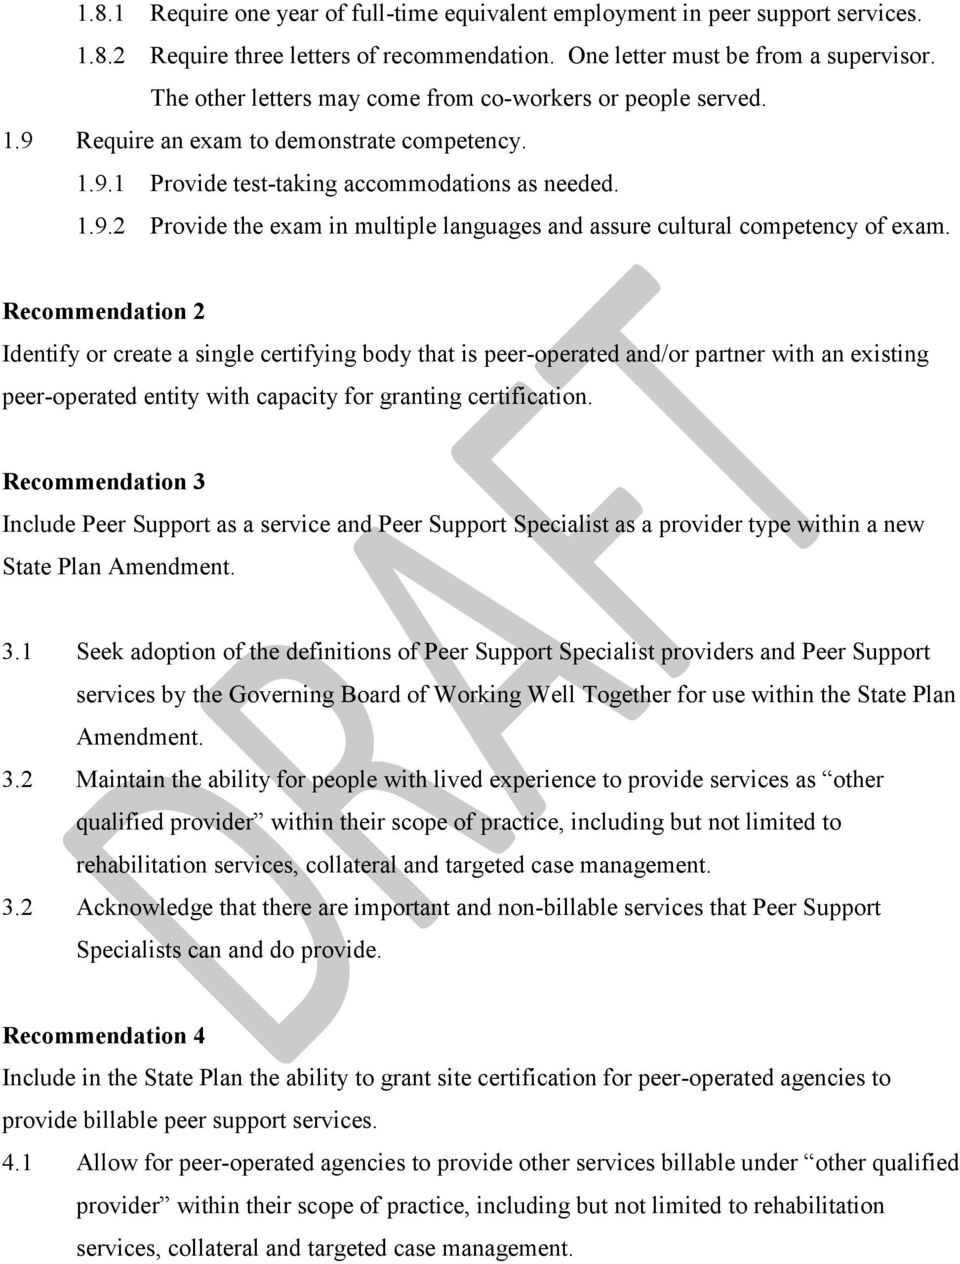 Final Stakeholder Recommendations Regarding Certification Of Peer Support Specialists Pdf Free Download